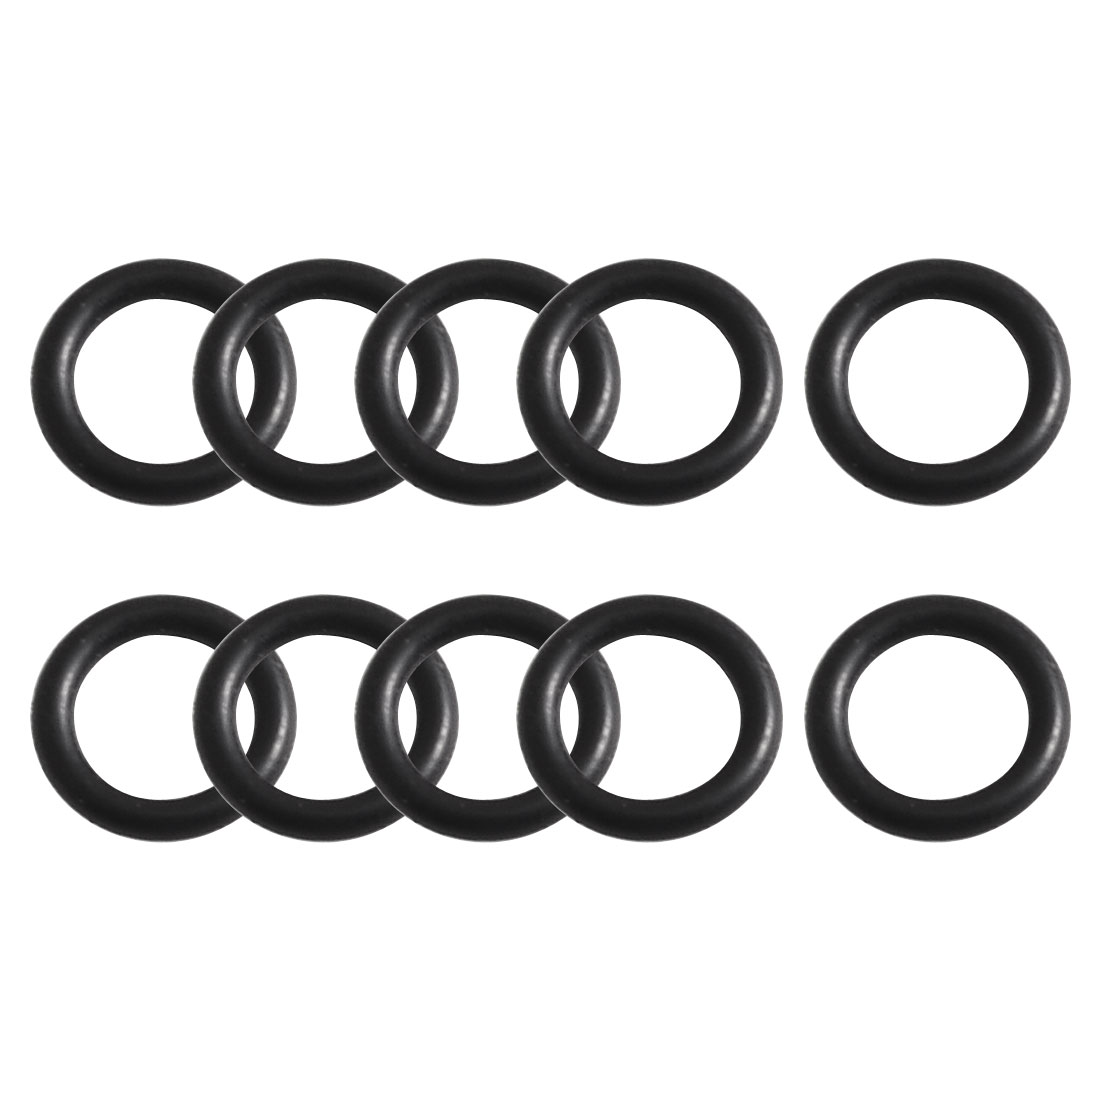 10 Pcs Black Rubber O Ring Oil Filter Sealing Gasket 7.1mm x 1.8mm